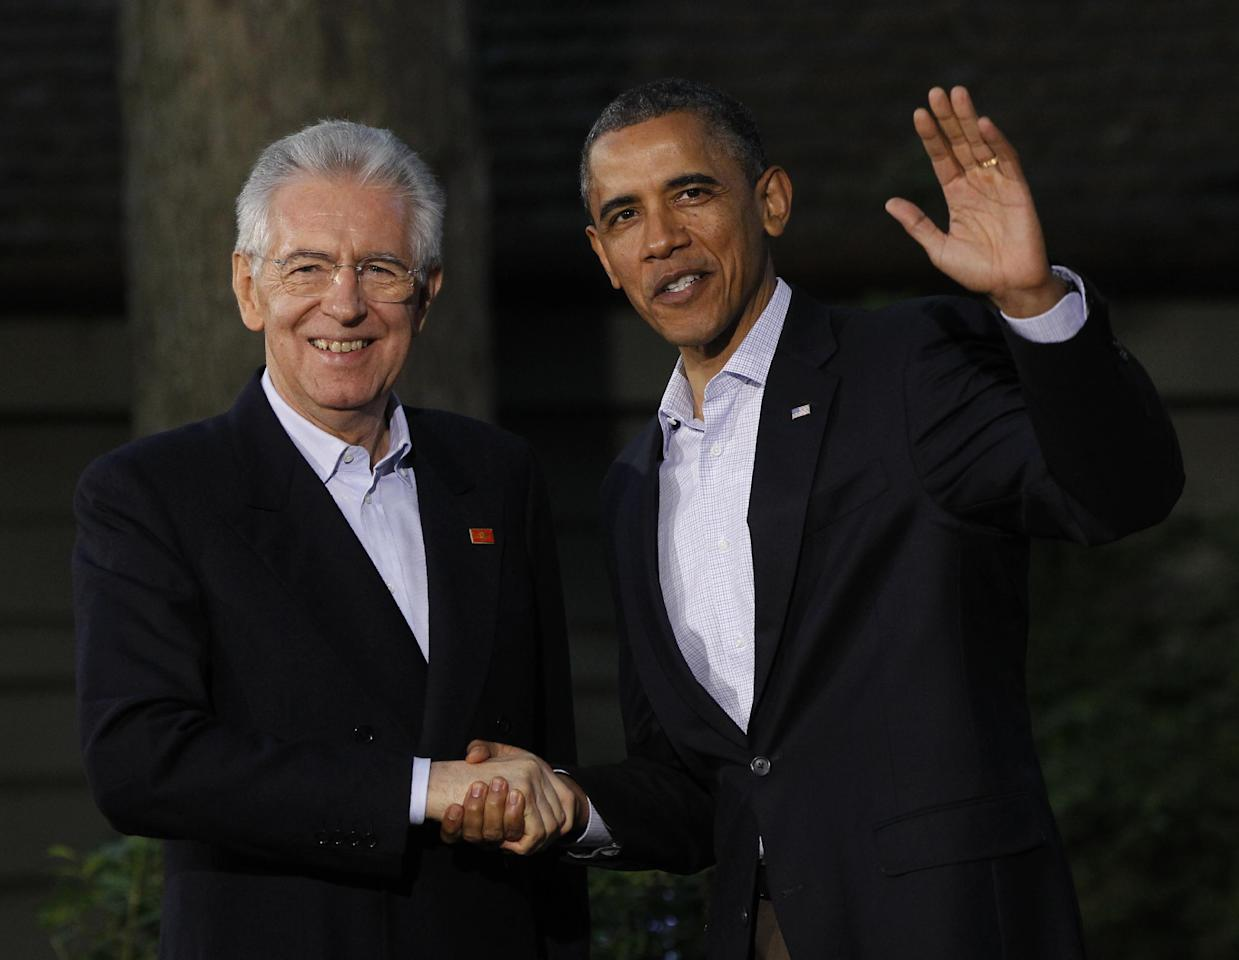 President Barack Obama, right, shakes hands with Italy's Prime Minister Mario Monti on arrival for the G8 Summit Friday, May 18, 2012 at Camp David, Md. (AP Photo/Charles Dharapak)